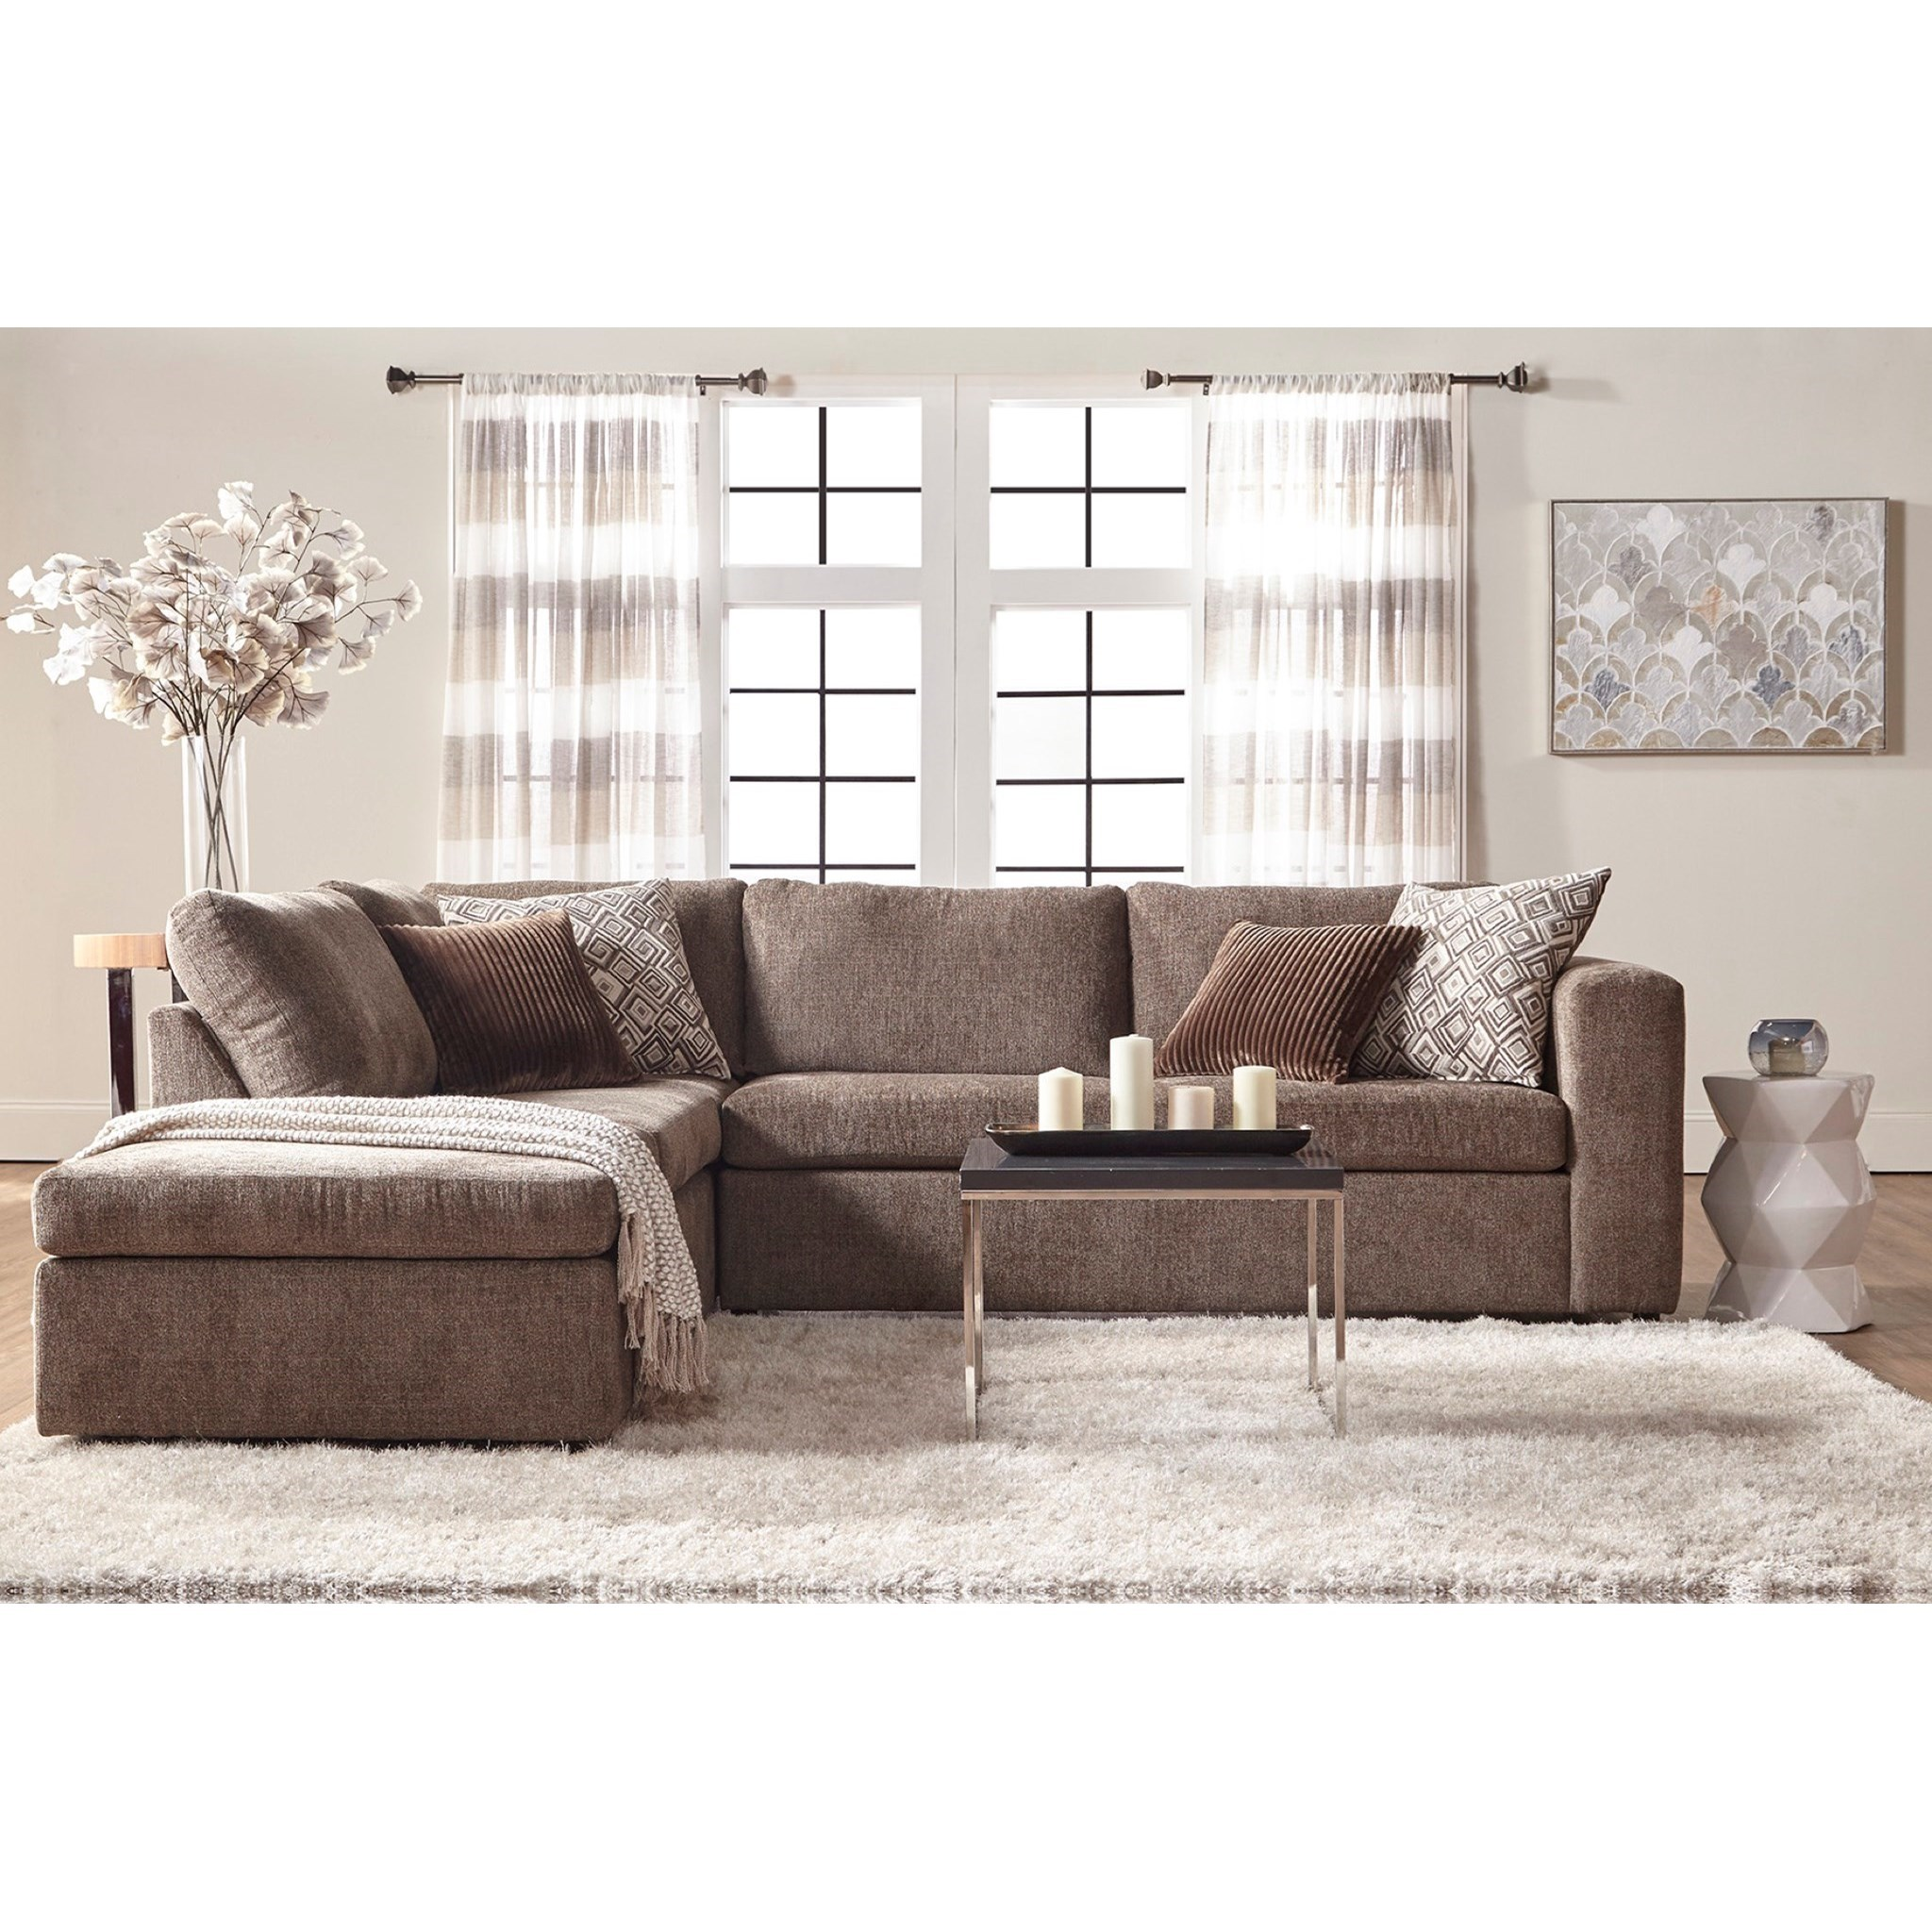 1100 Sectional Sofa with Chaise by Hughes Furniture at Wayside Furniture